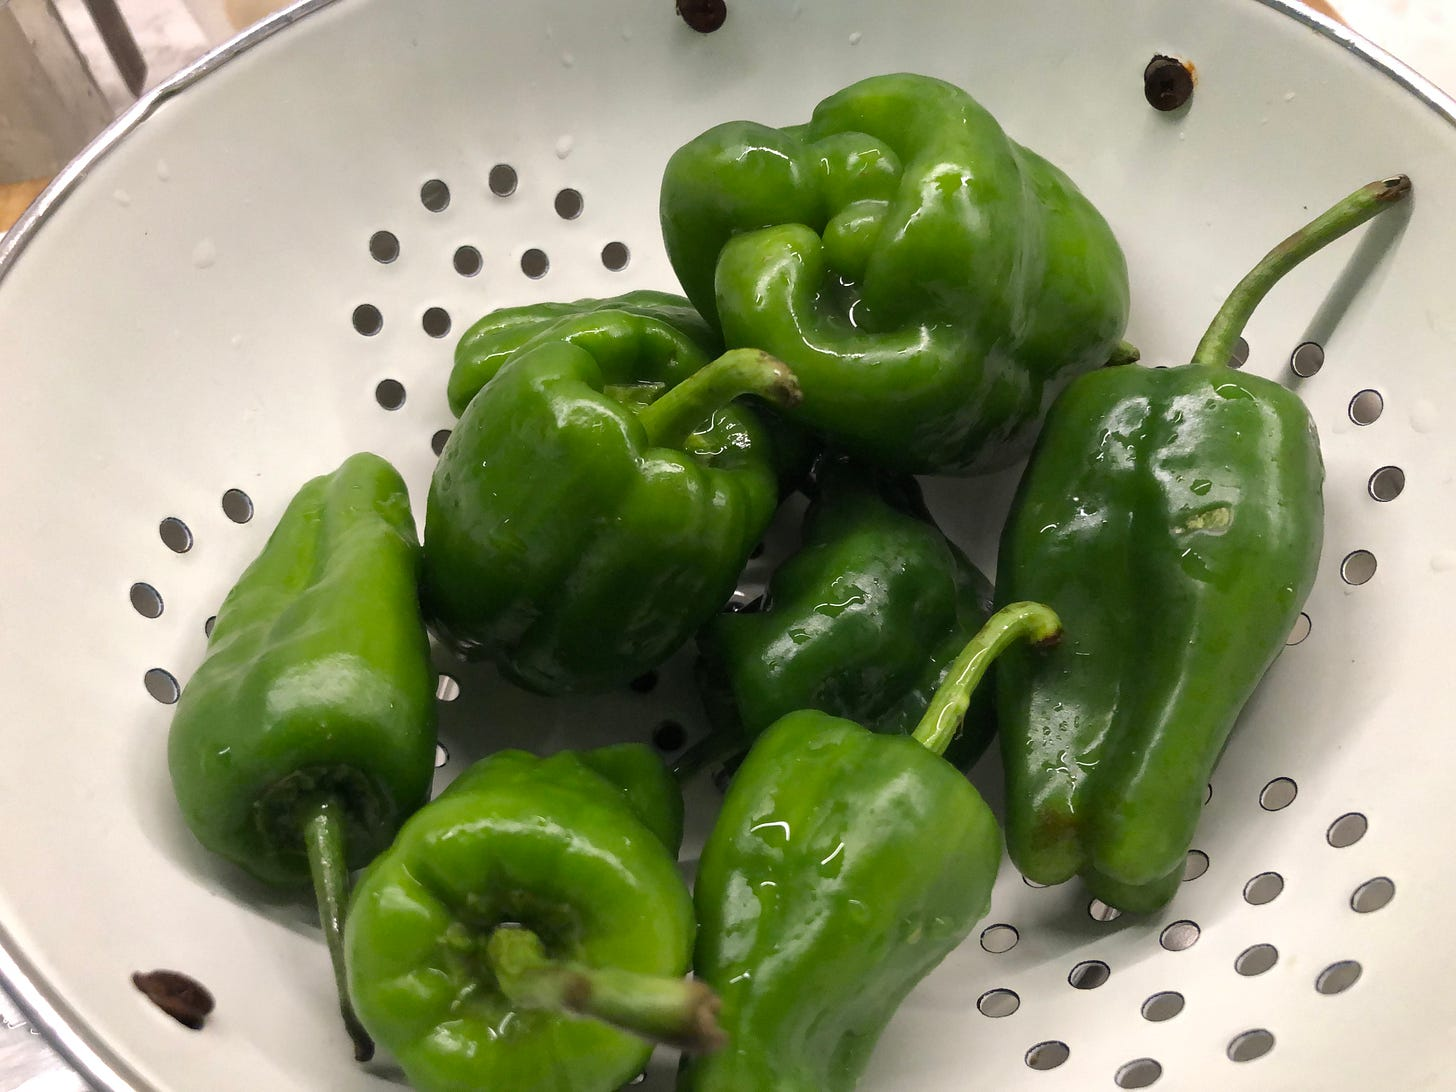 A colander full of just-washed, very large Padron peppers